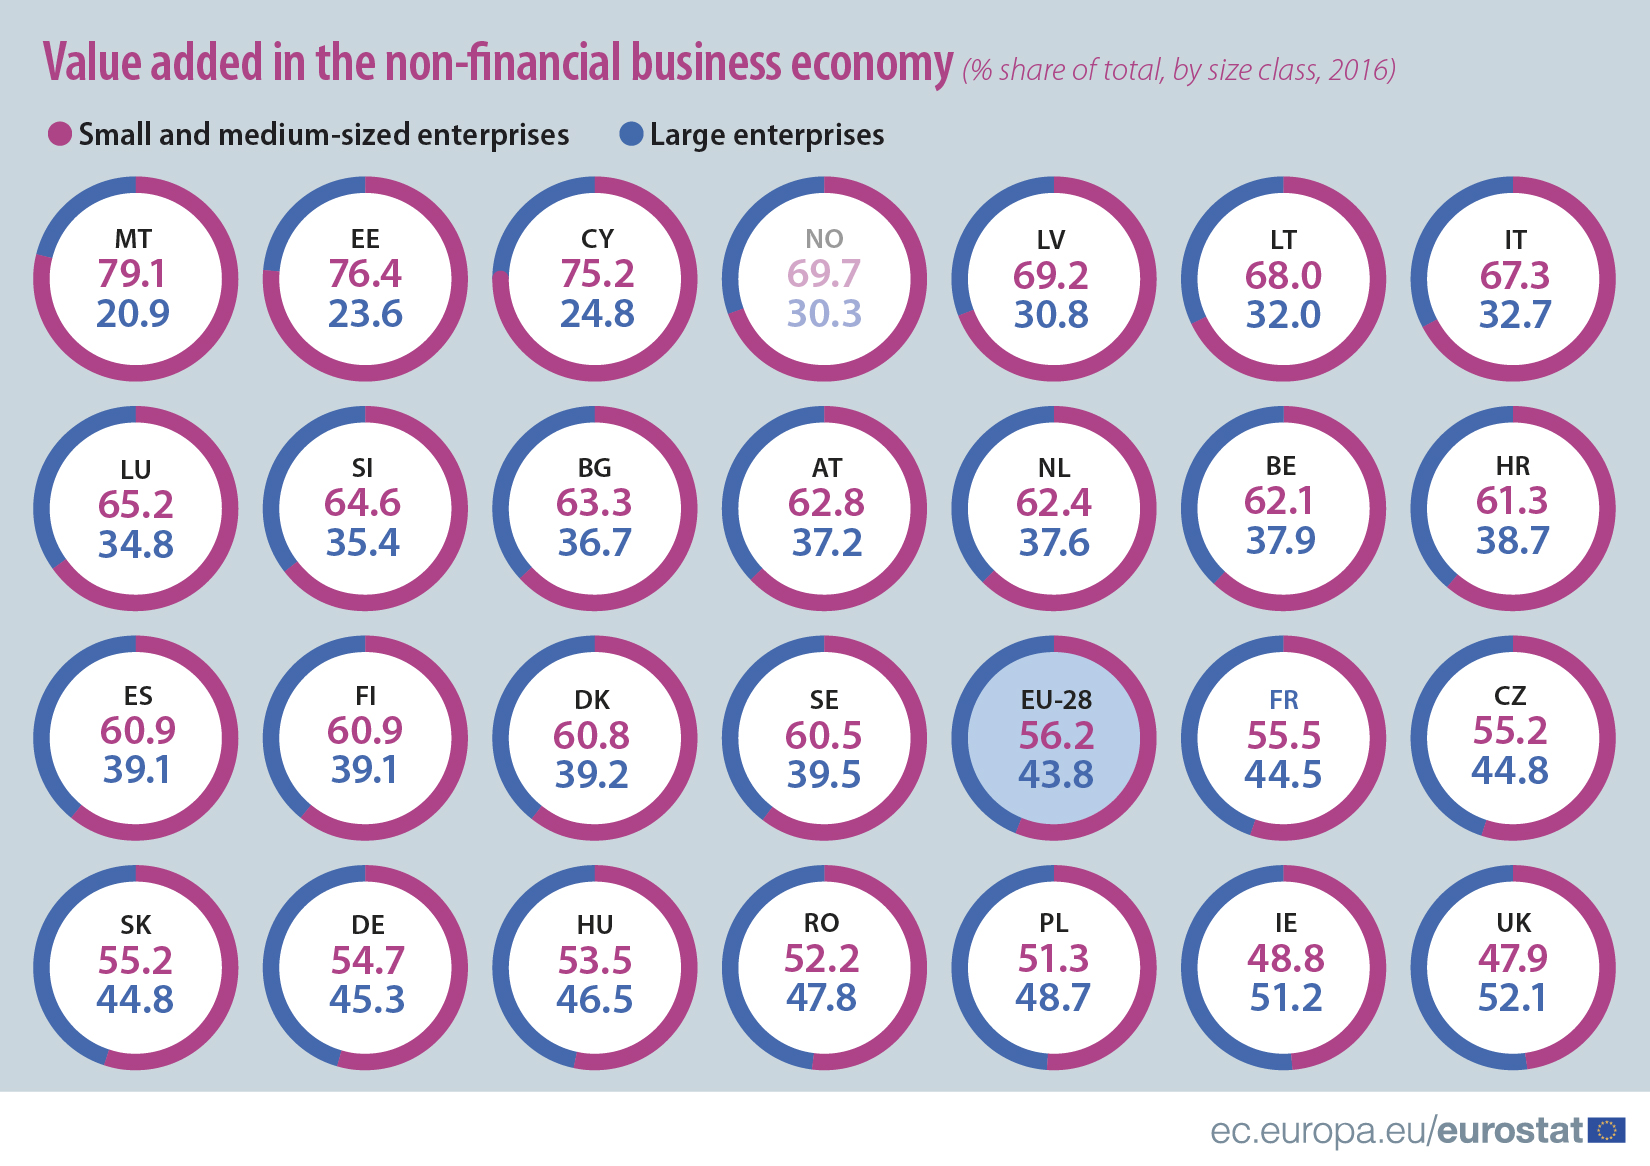 Value added in the non-financial business economy, by size class, 2016